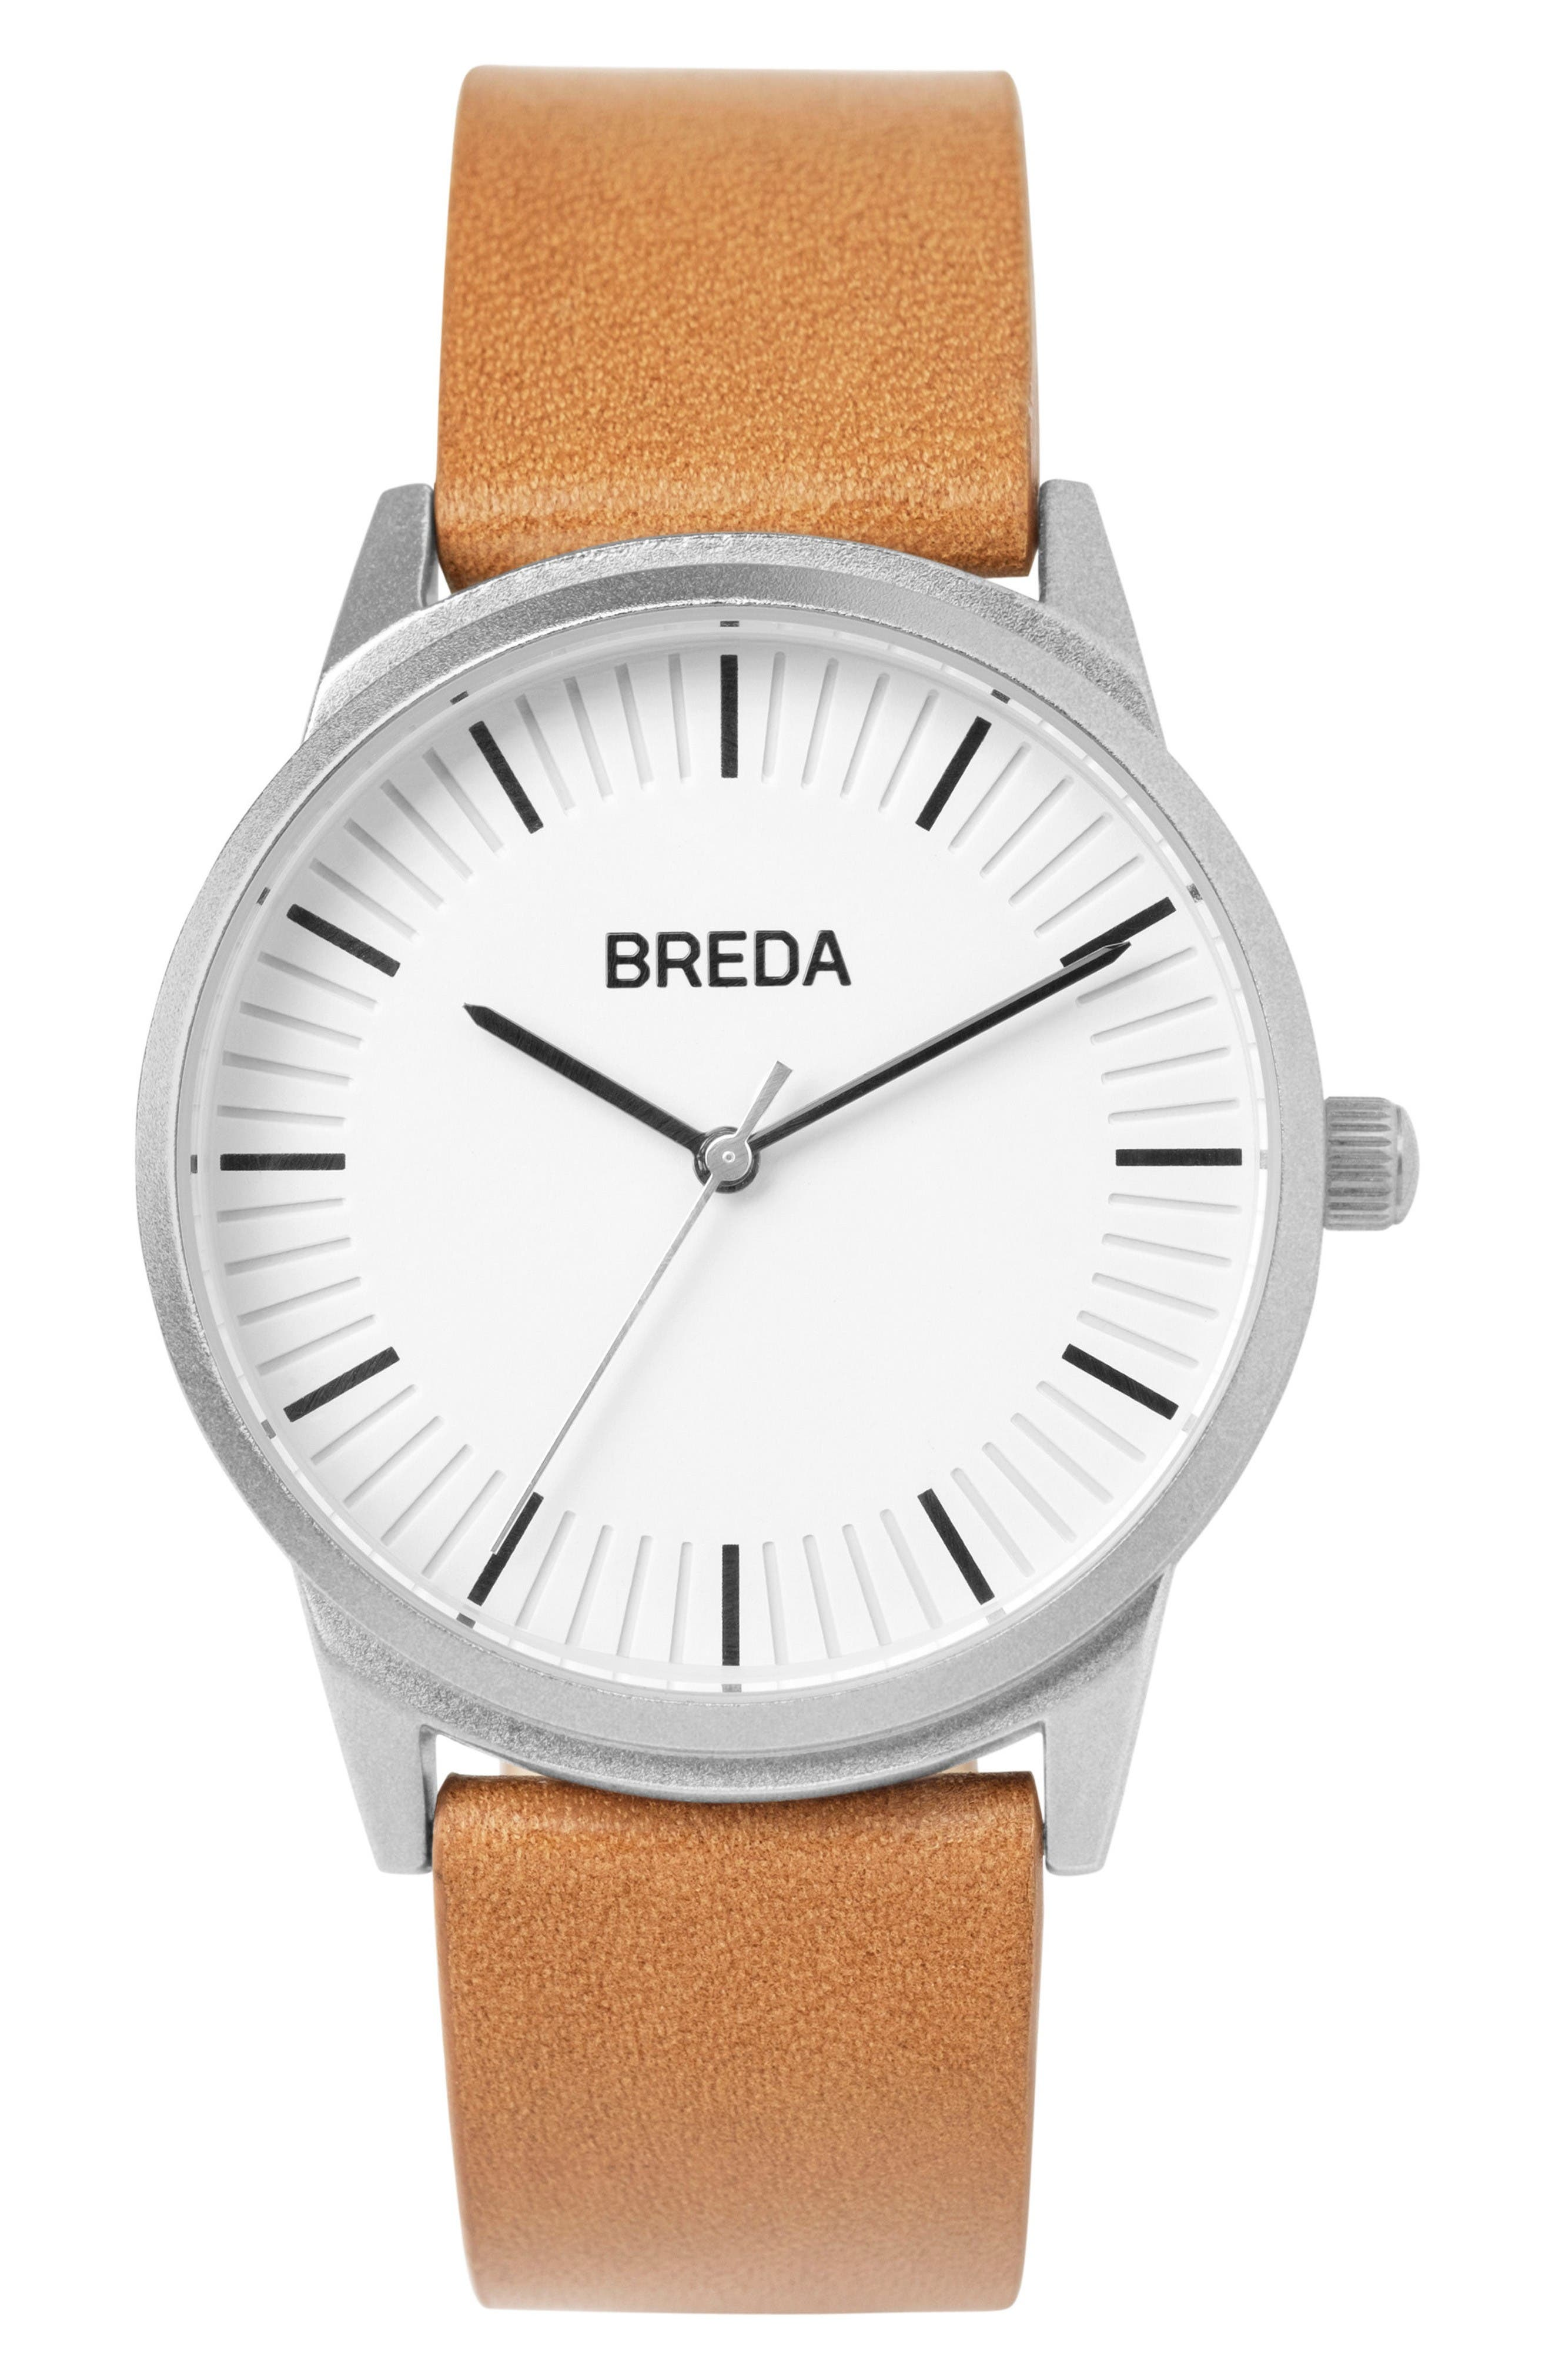 Main Image - BREDA Bresson Leather Strap Watch, 42mm